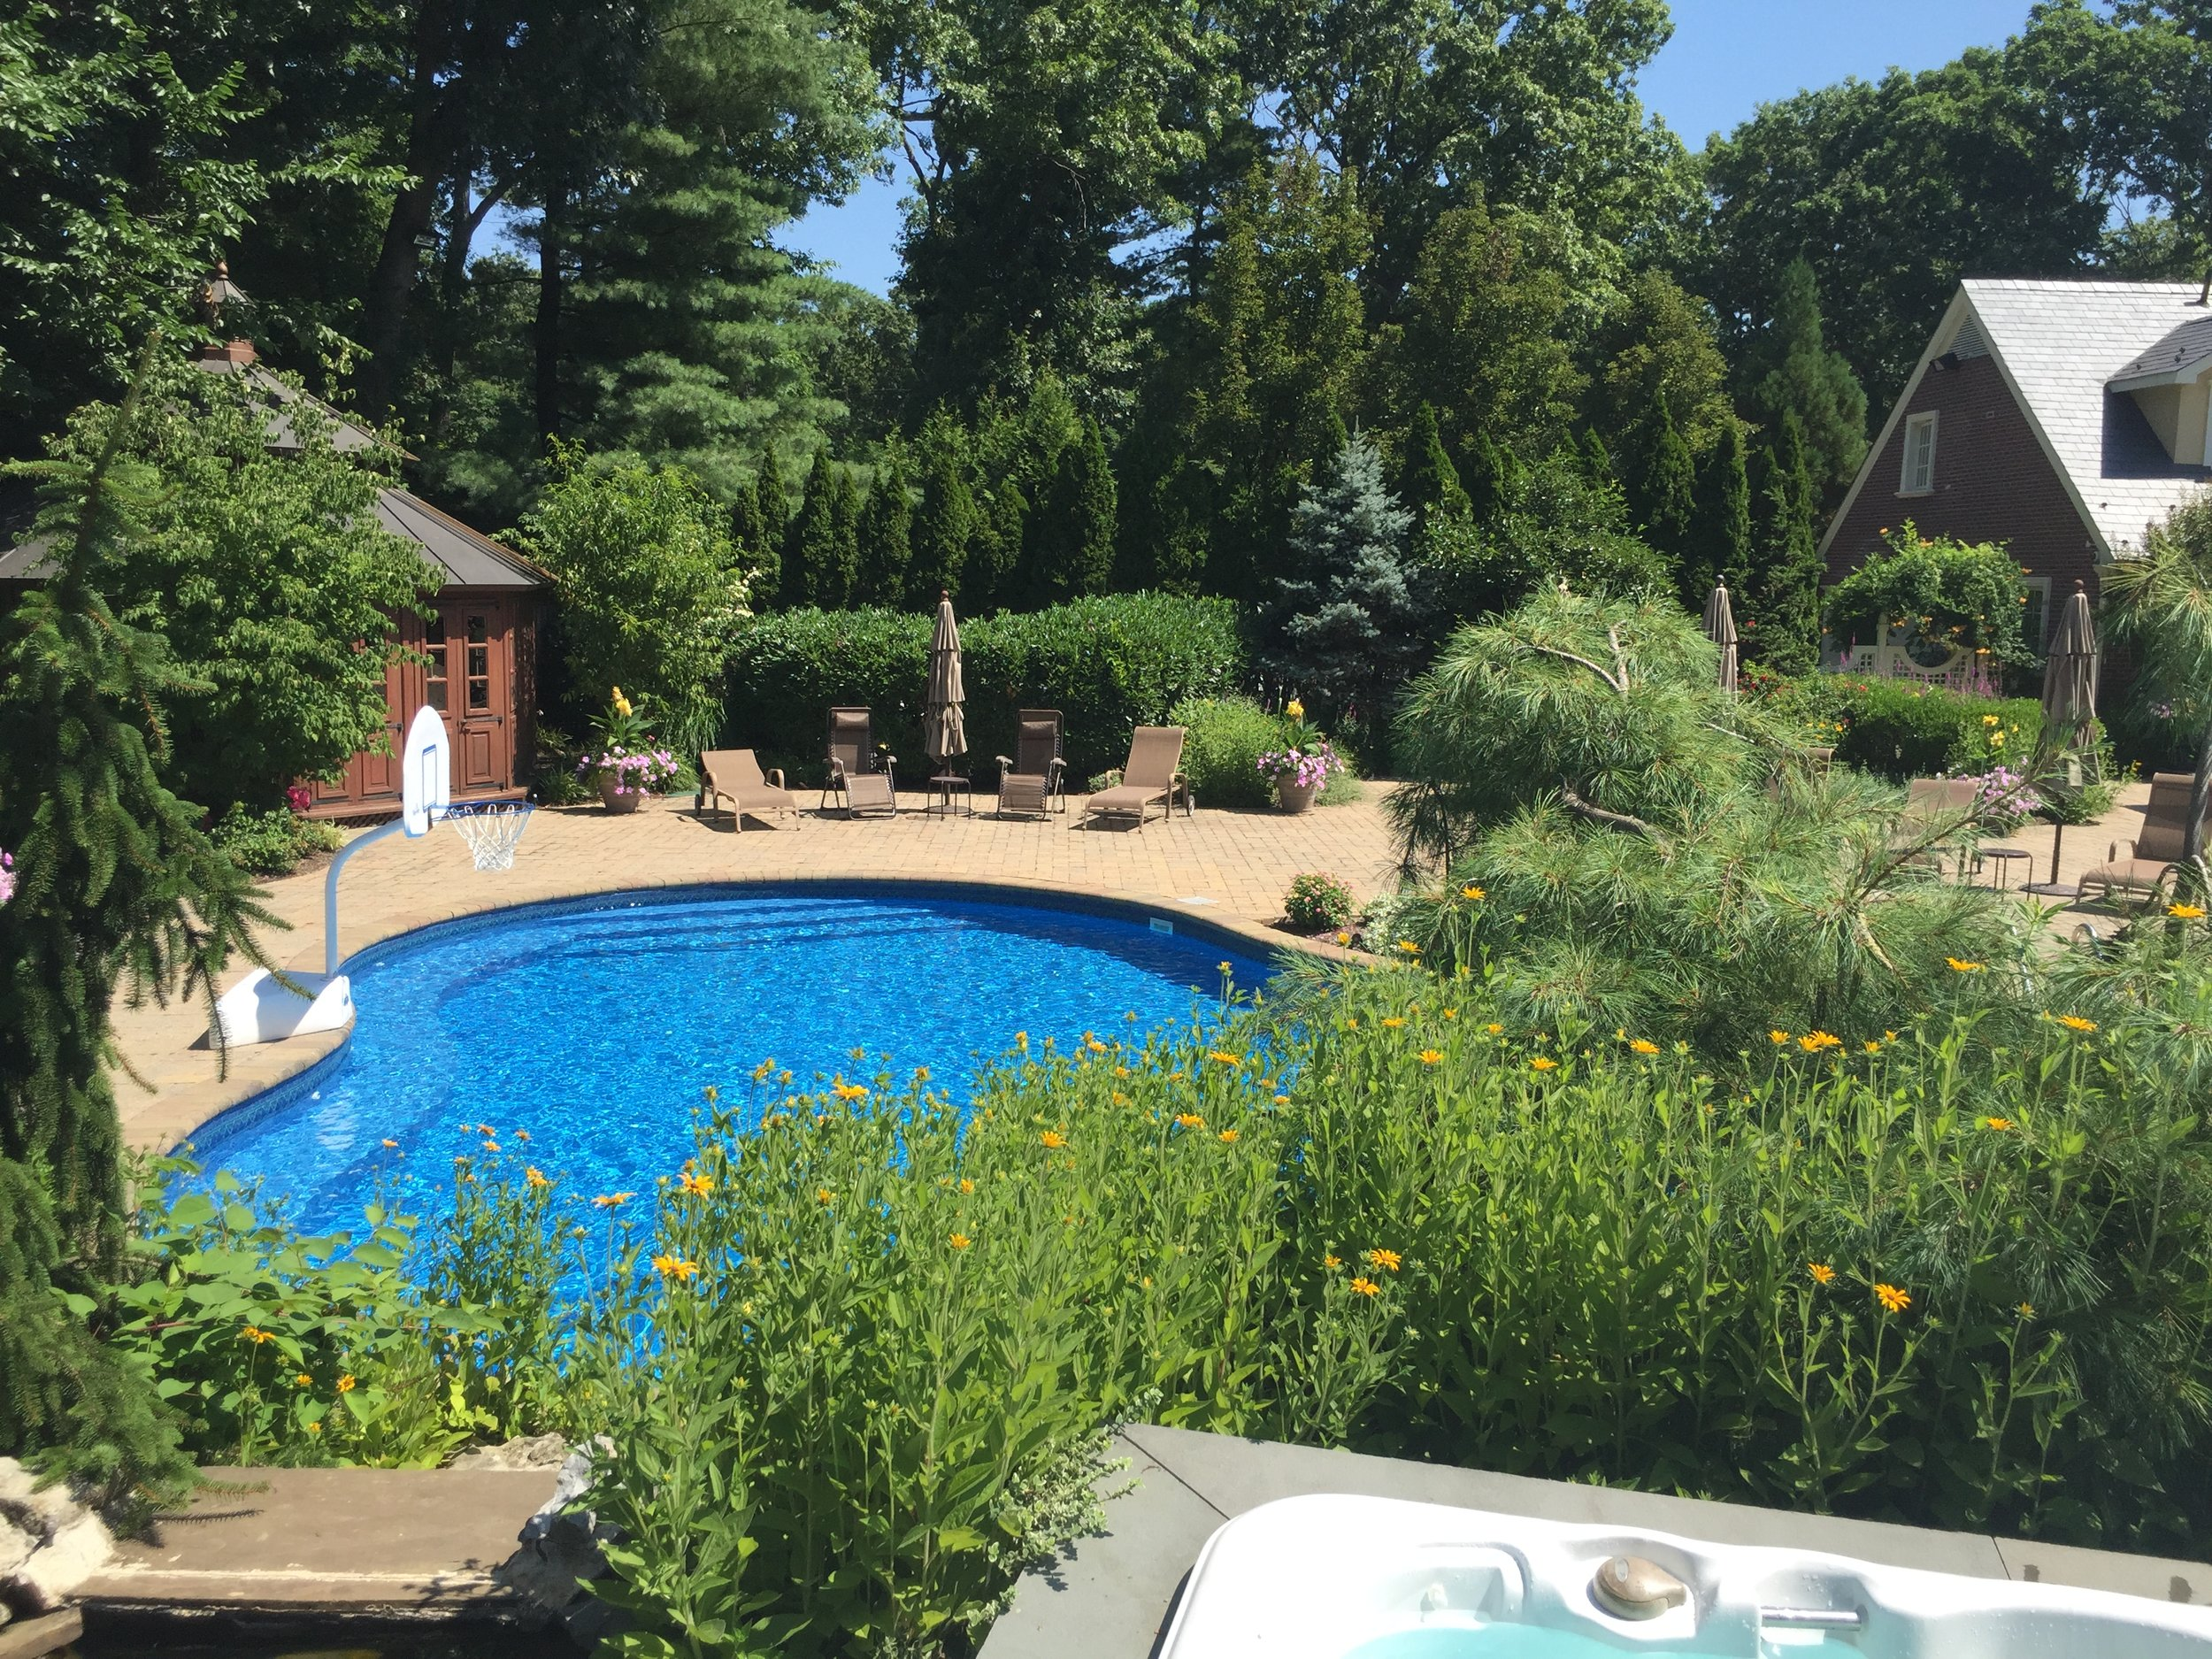 Unique Swimming Pool Shapes and Designs to Take Your Oyster Bay, NY, Outdoor Space to the Next Level